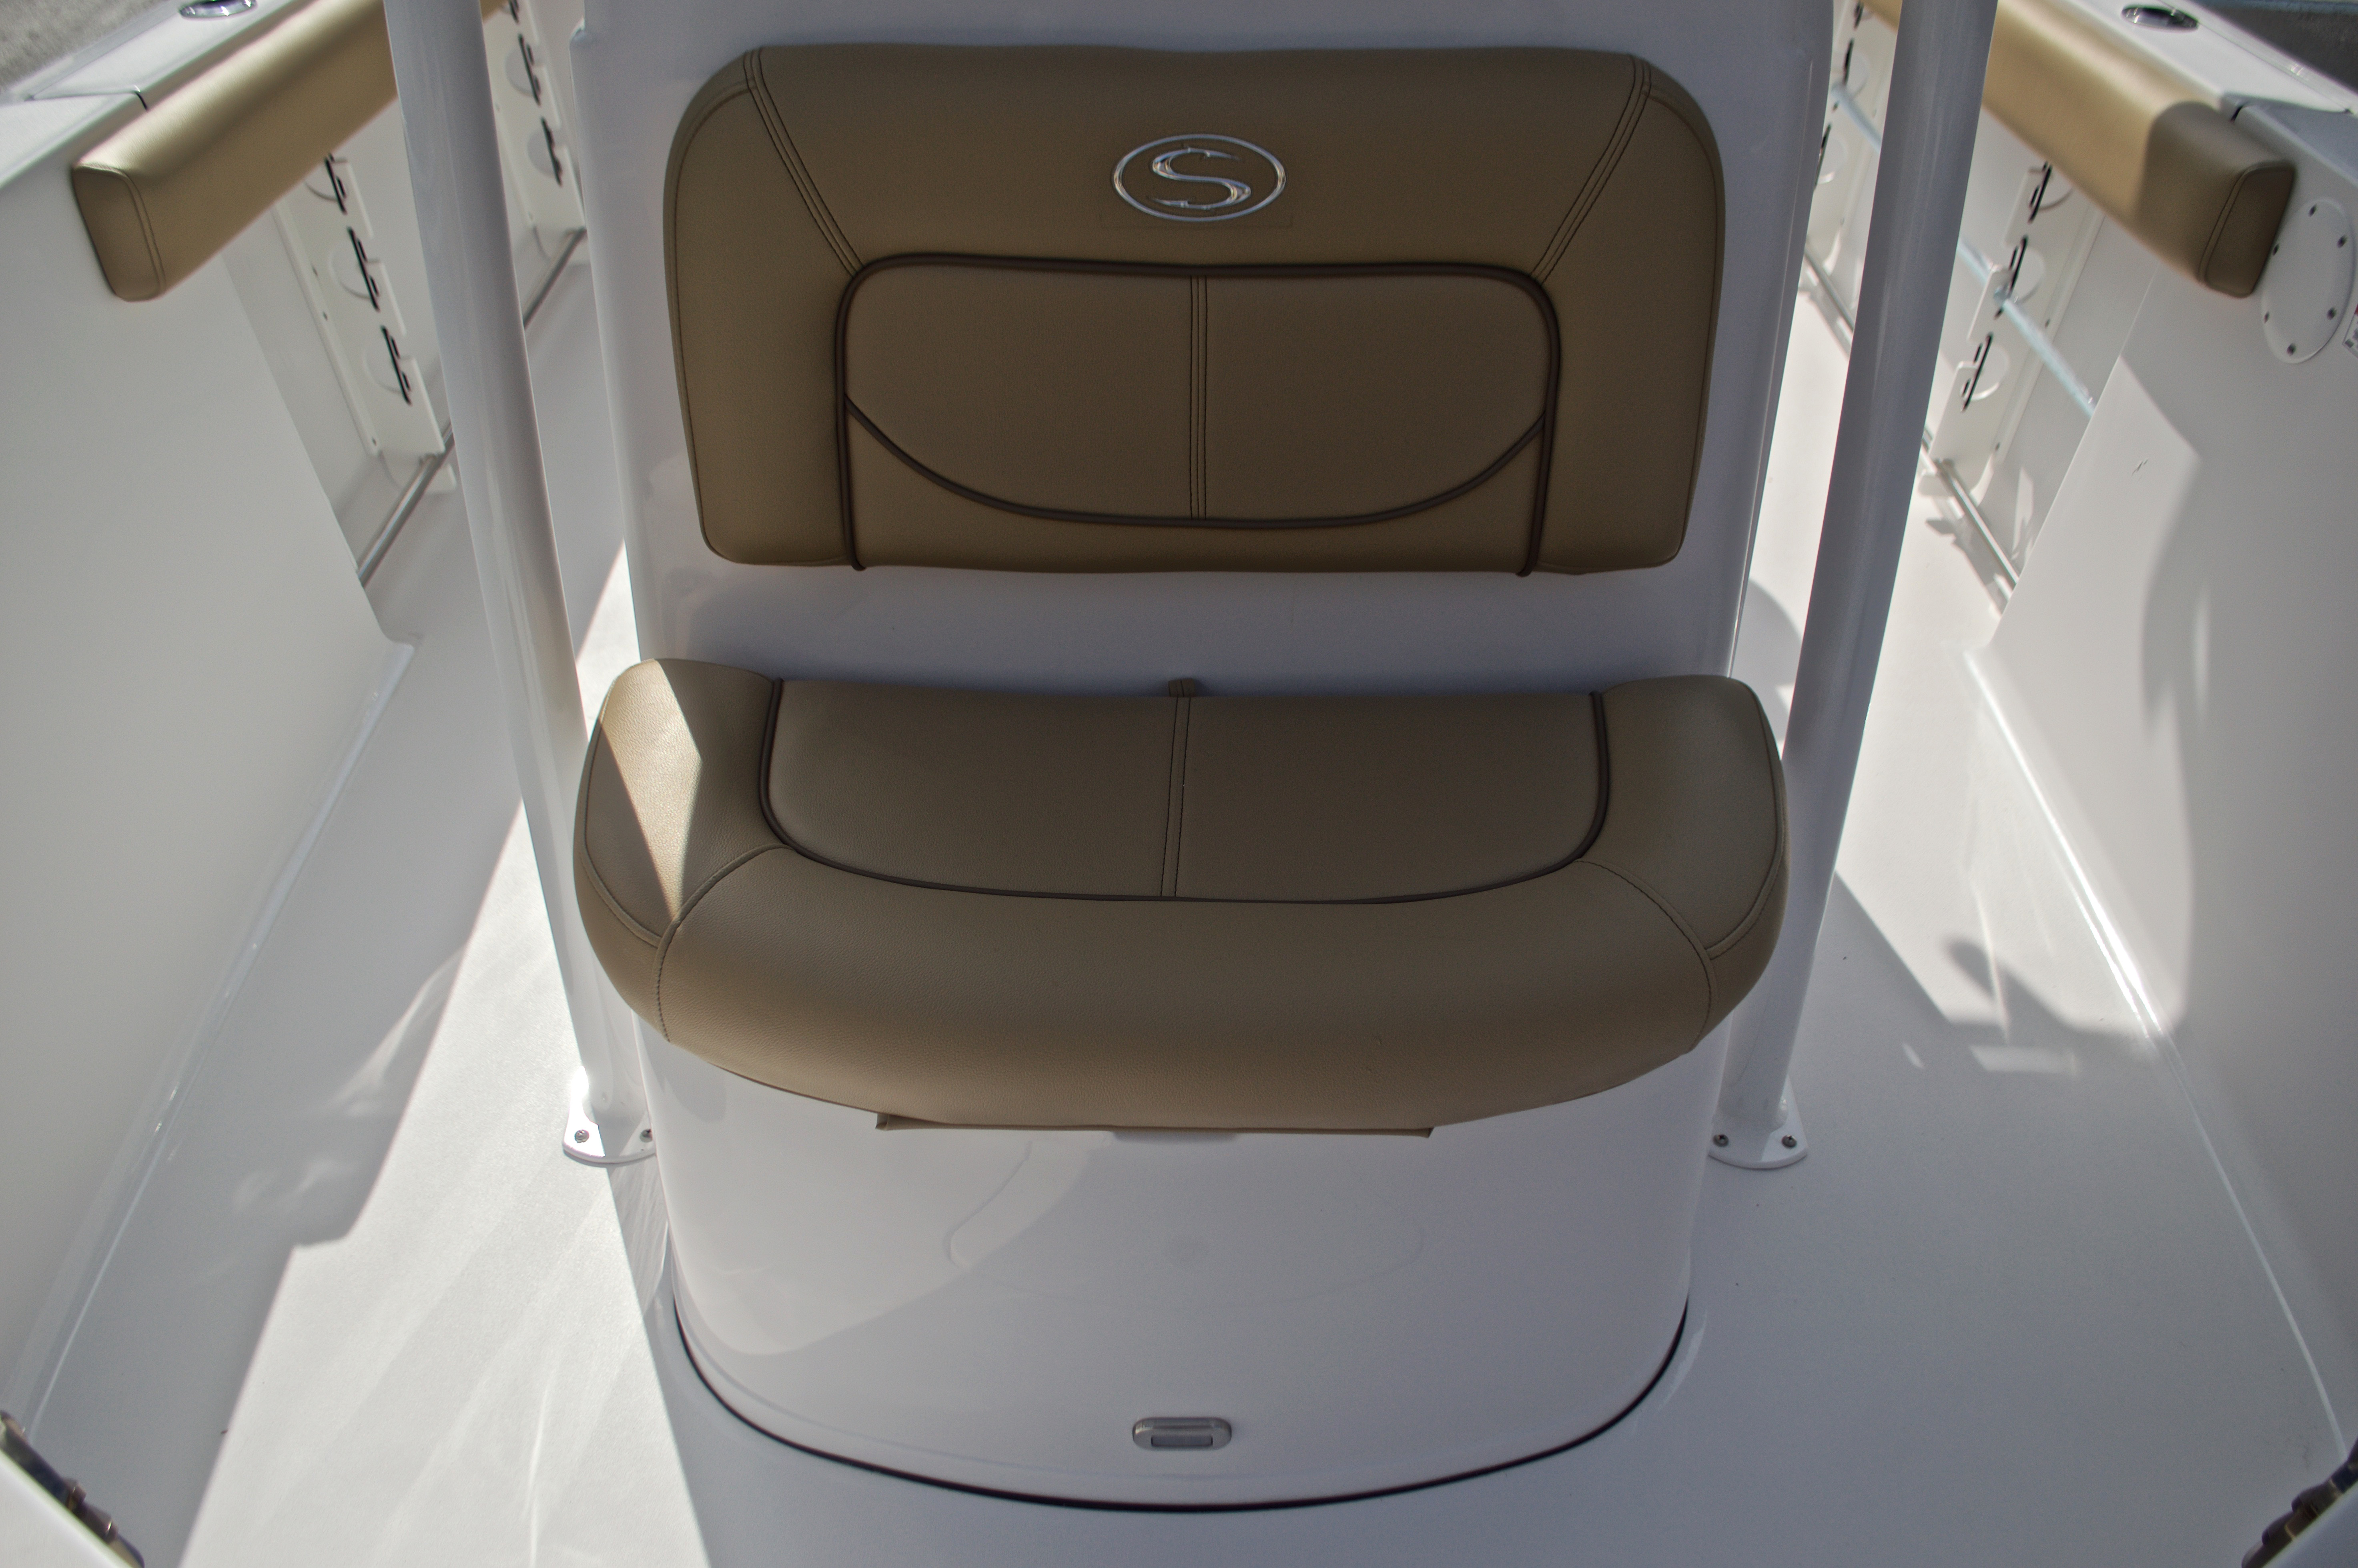 Thumbnail 42 for New 2017 Sportsman Open 232 Center Console boat for sale in West Palm Beach, FL